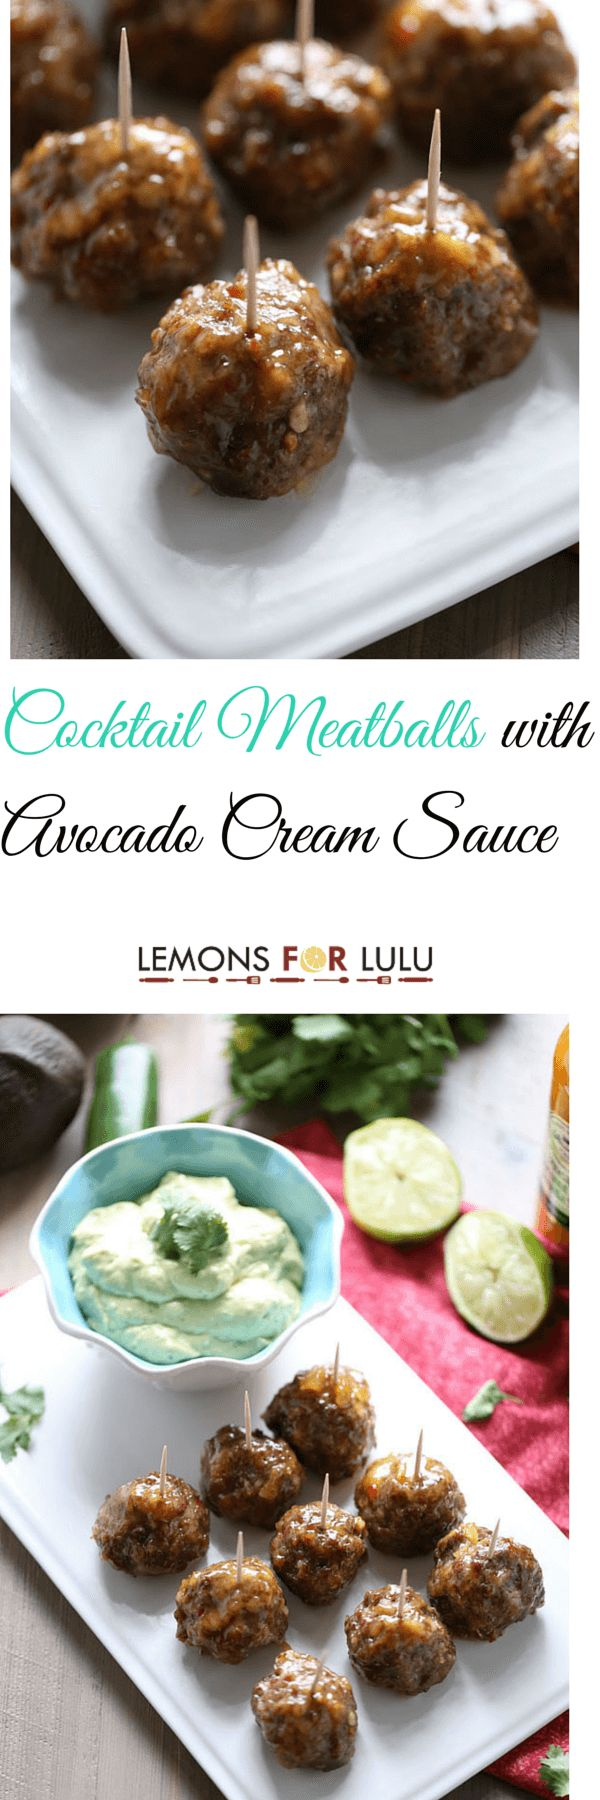 Sweet and savory meatball recipes with a unique blend of flavors in the cocktail sauce and the avocado dipping sauce that is served along side! These meatballs are terrific party food, but would make an excellent quick meal as well! lemonsforlulu.com ~ http://www.lemonsforlulu.com